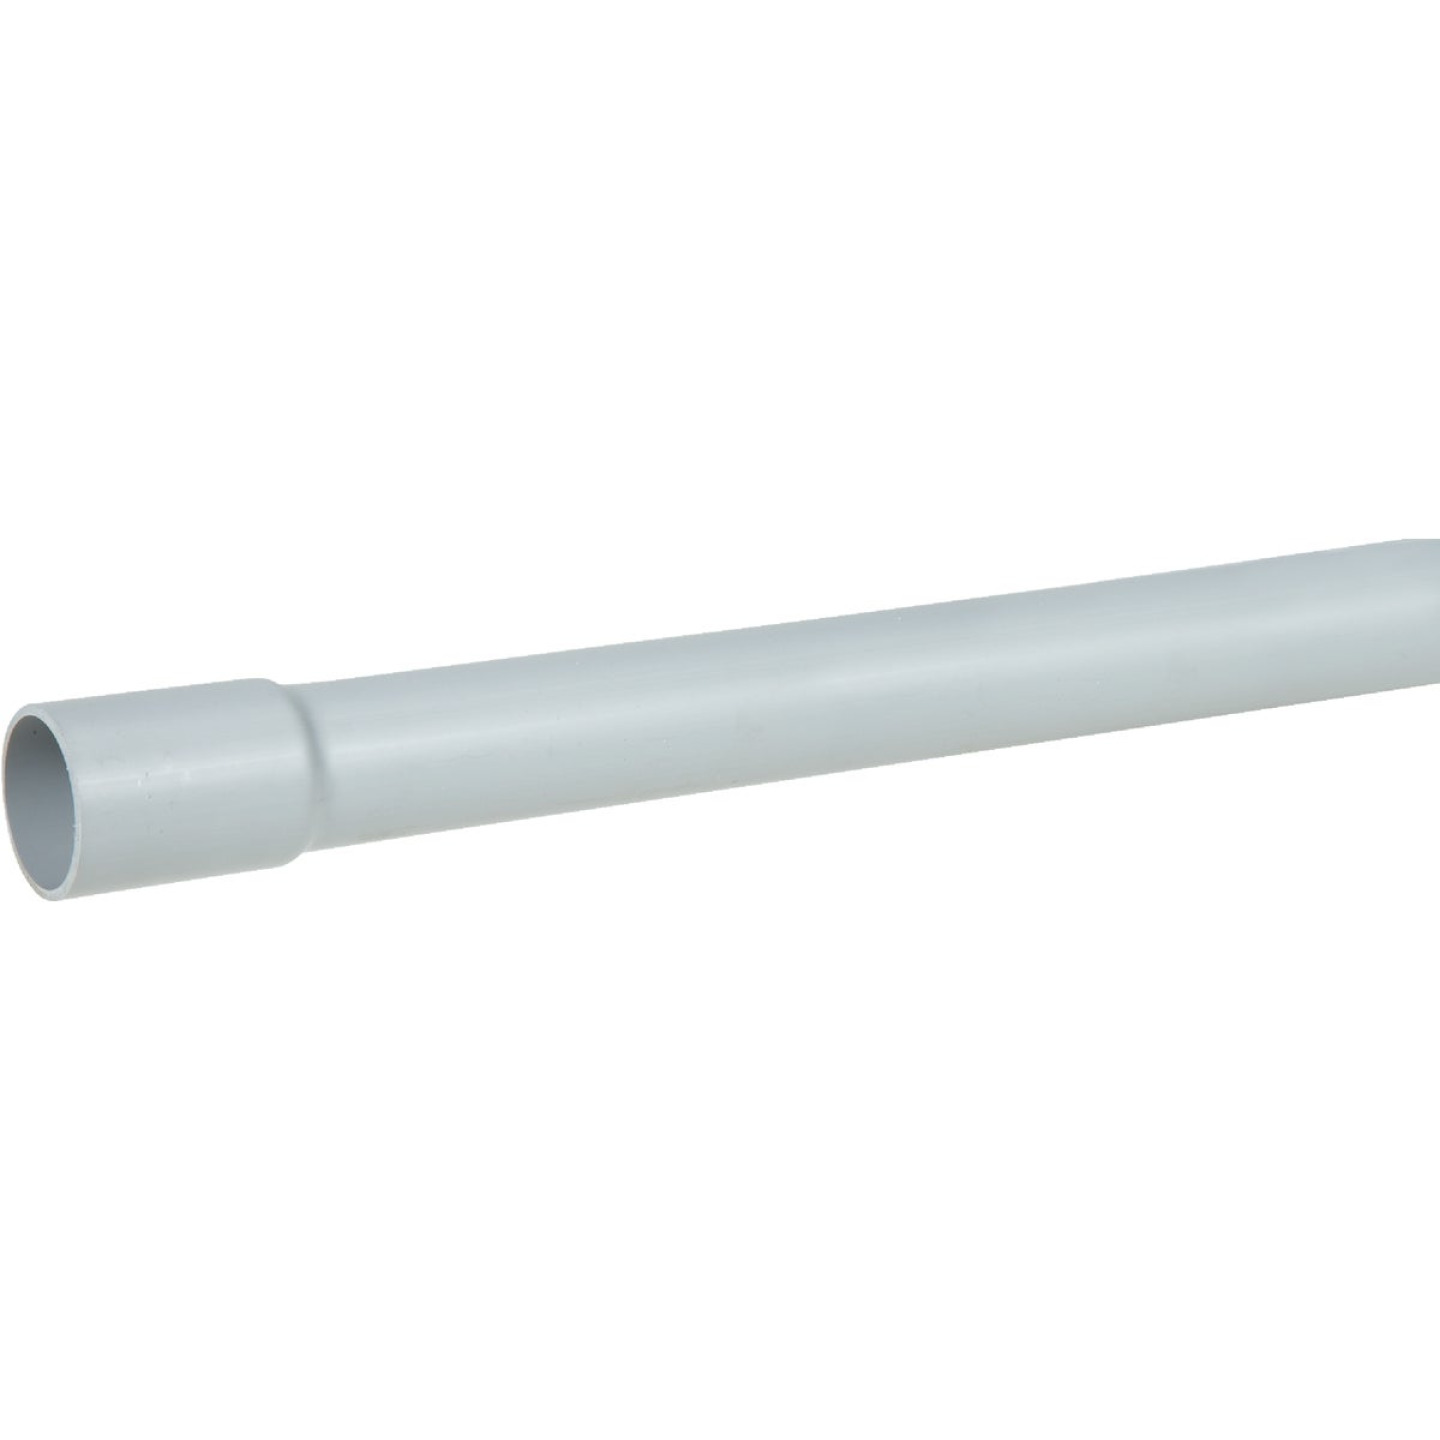 Allied 3/4 In. x 10 Ft. Schedule 40 PVC Conduit Image 1